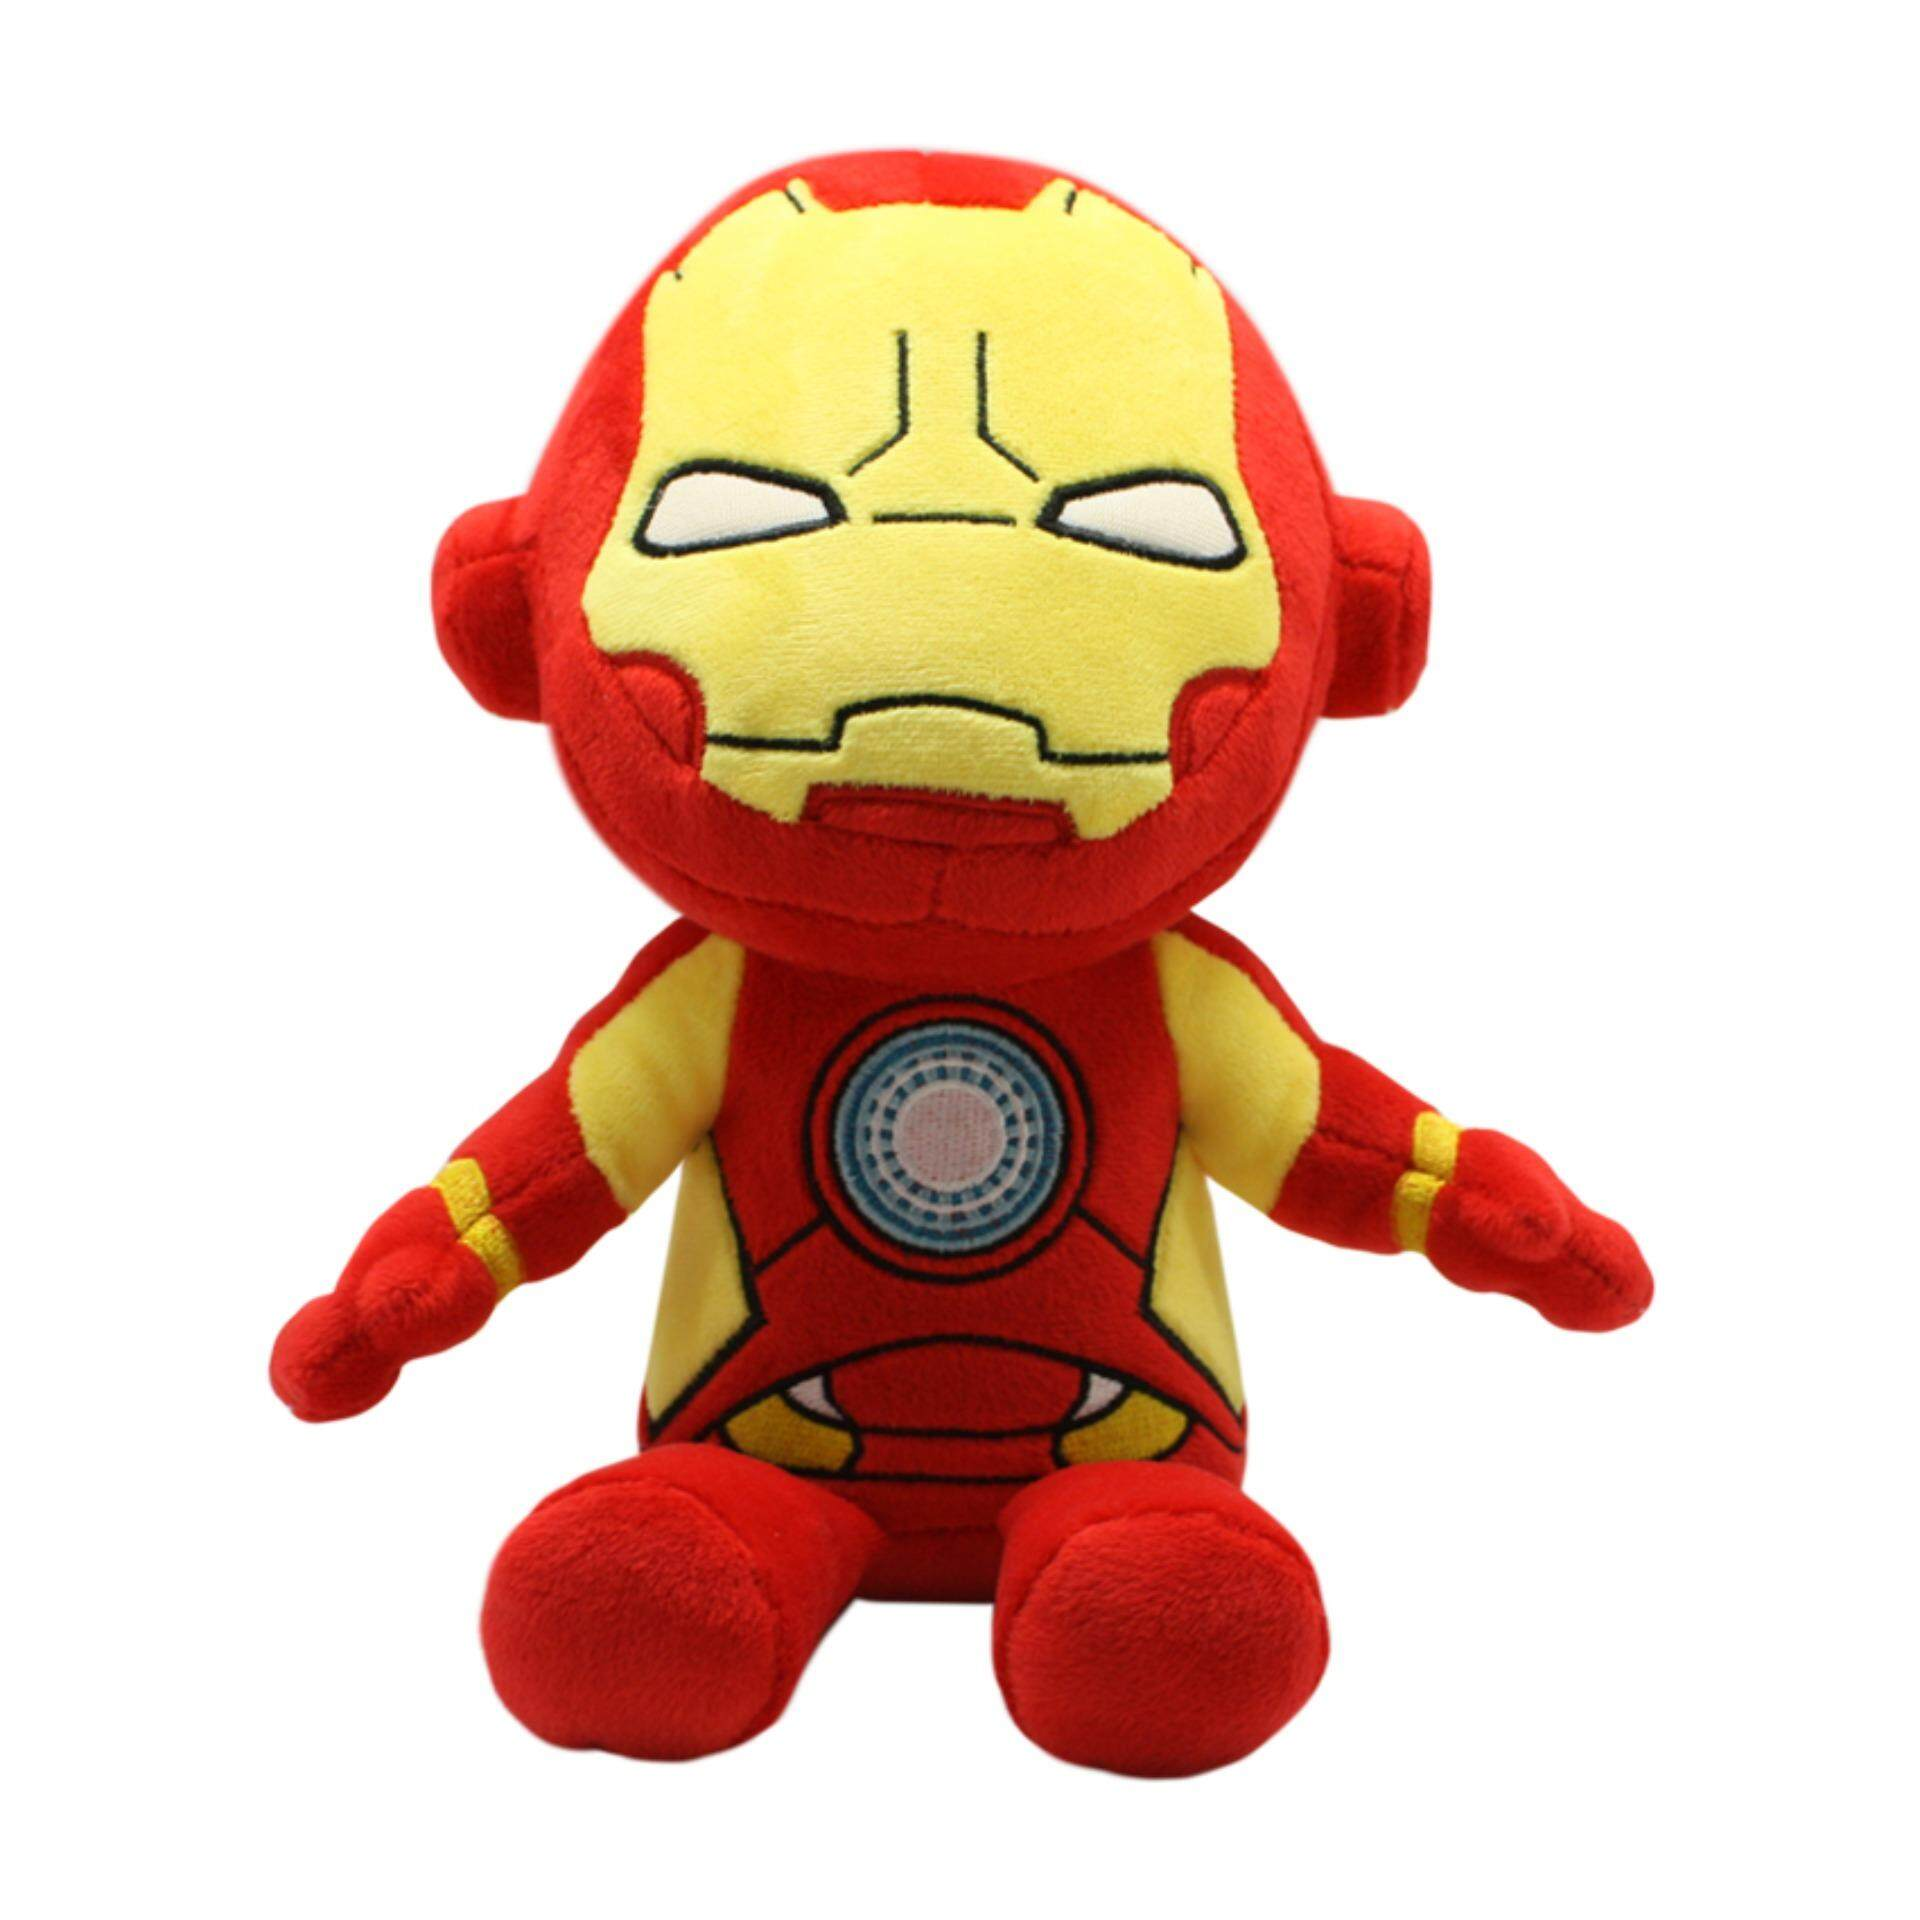 Marvel Avengers Standard Iron Man Plush Toys 10 Inches - Multicolour